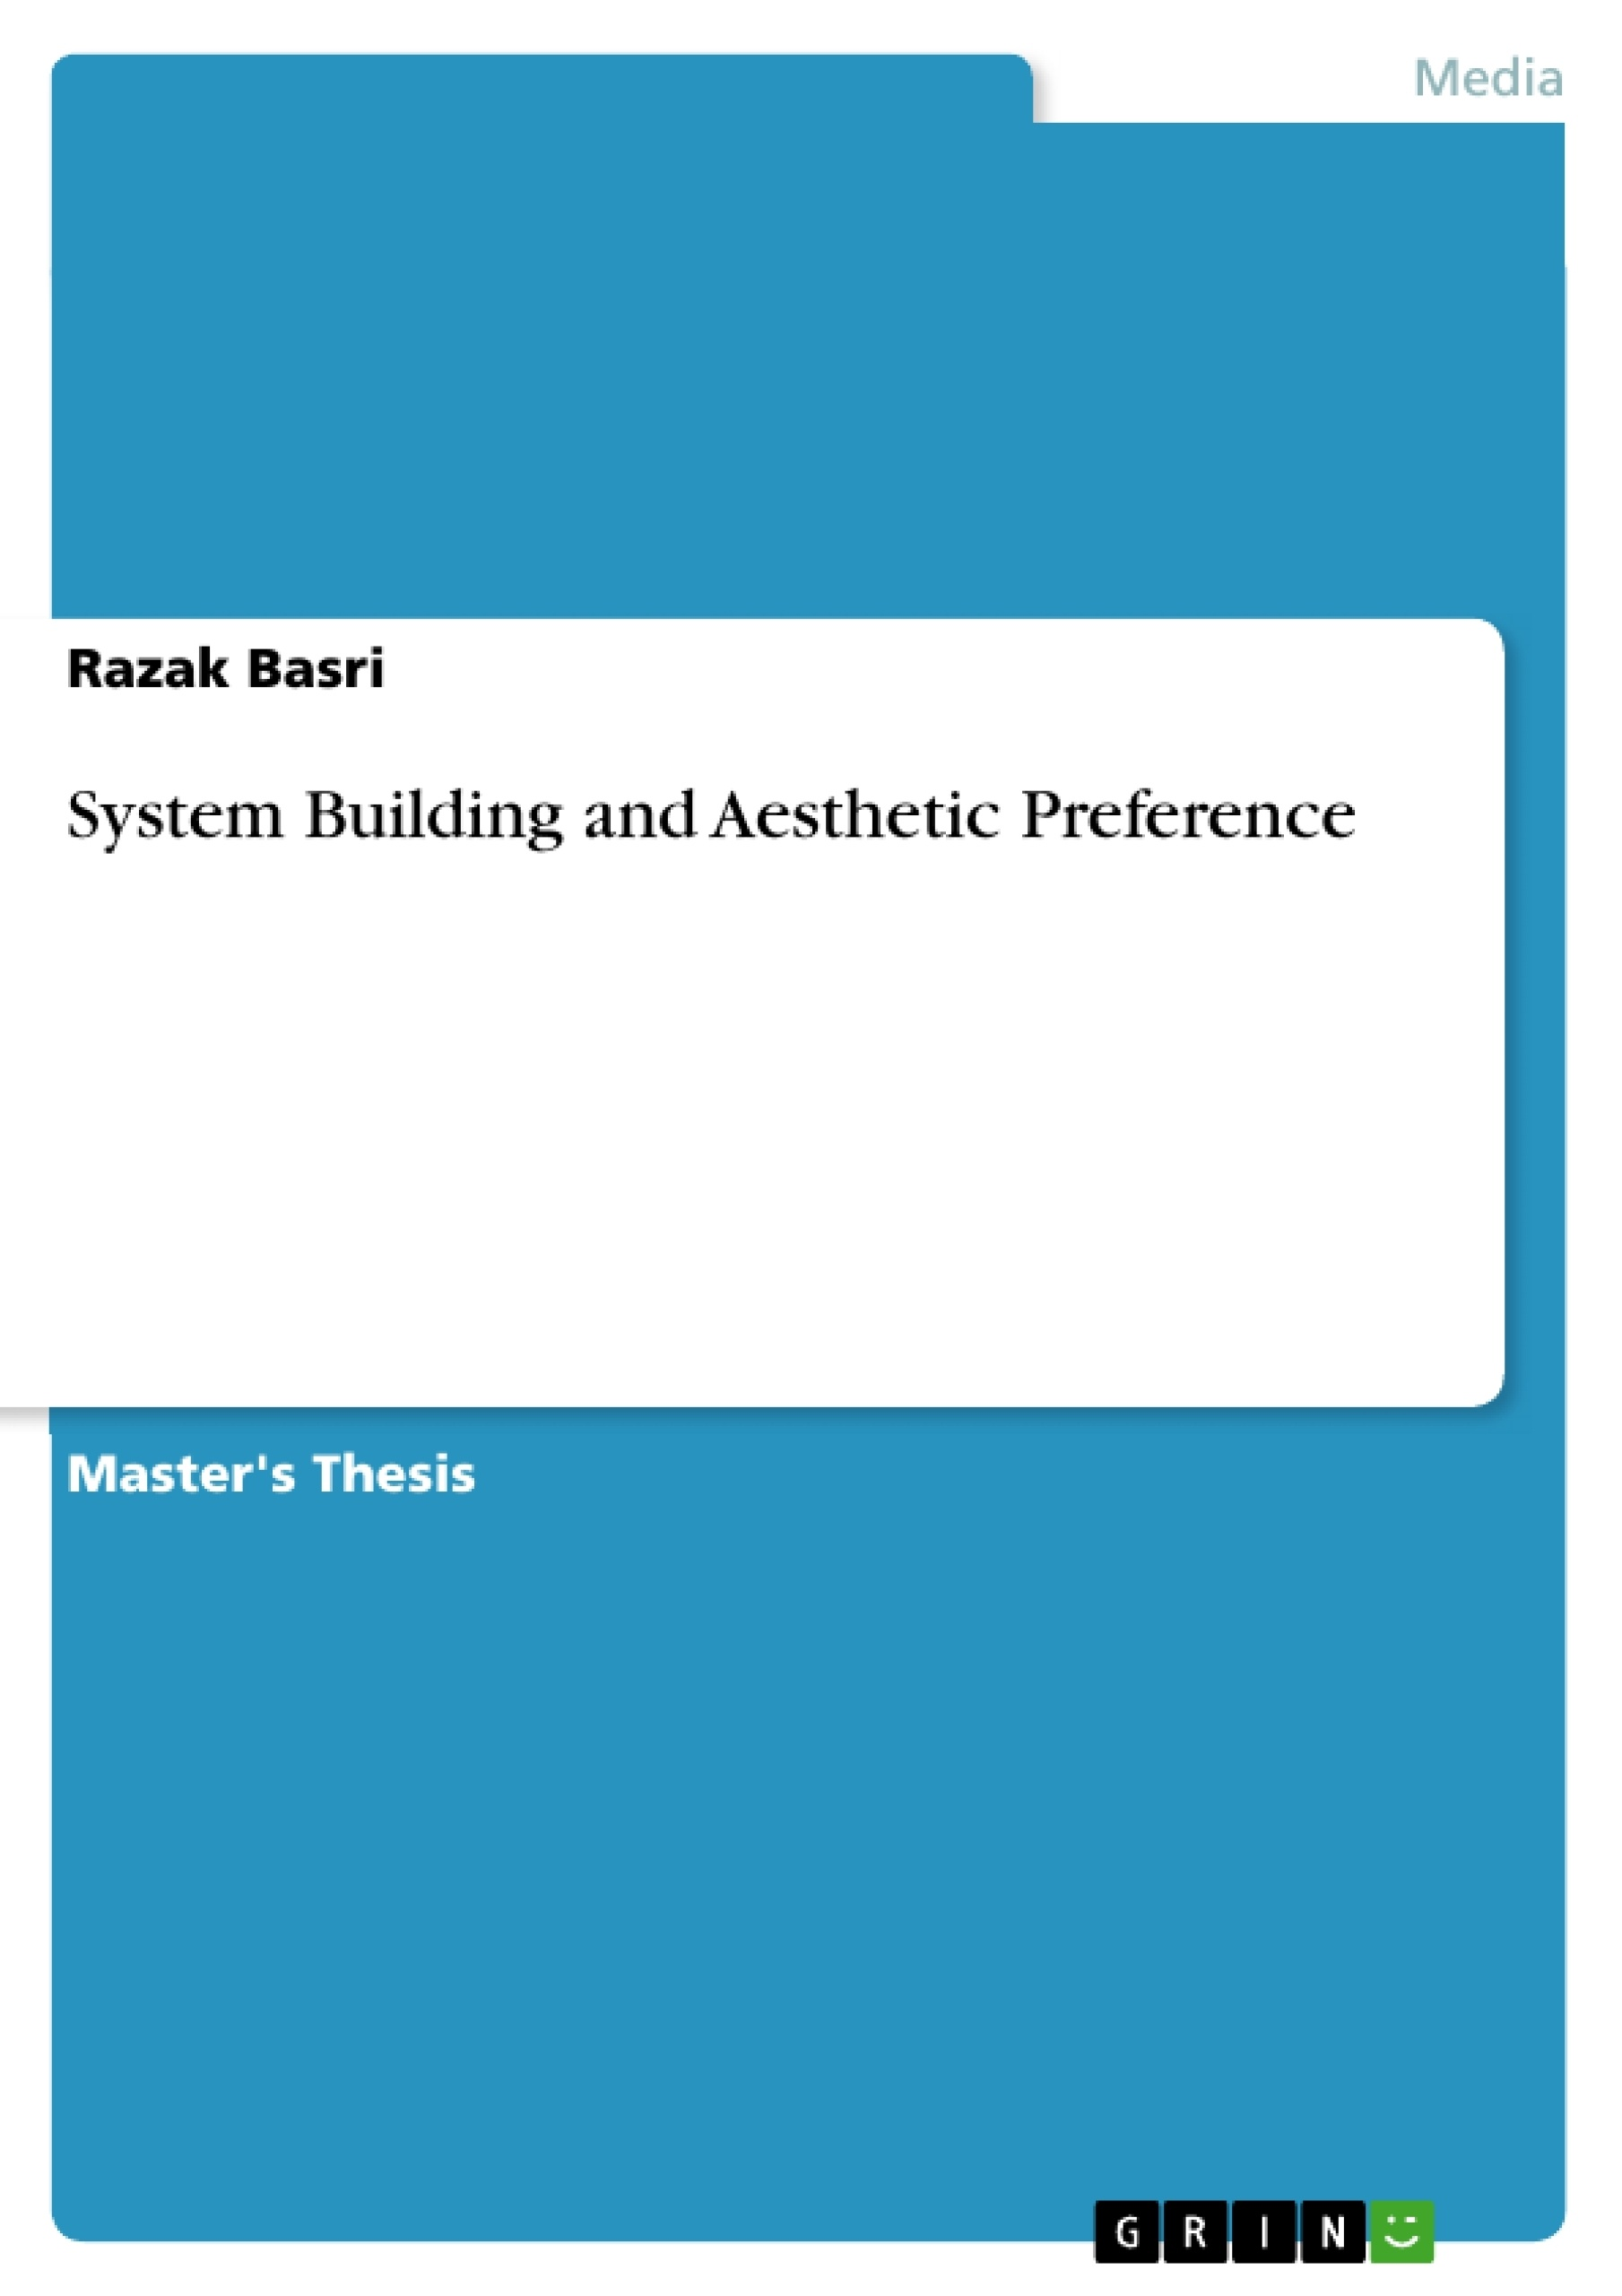 Title: System Building and Aesthetic Preference